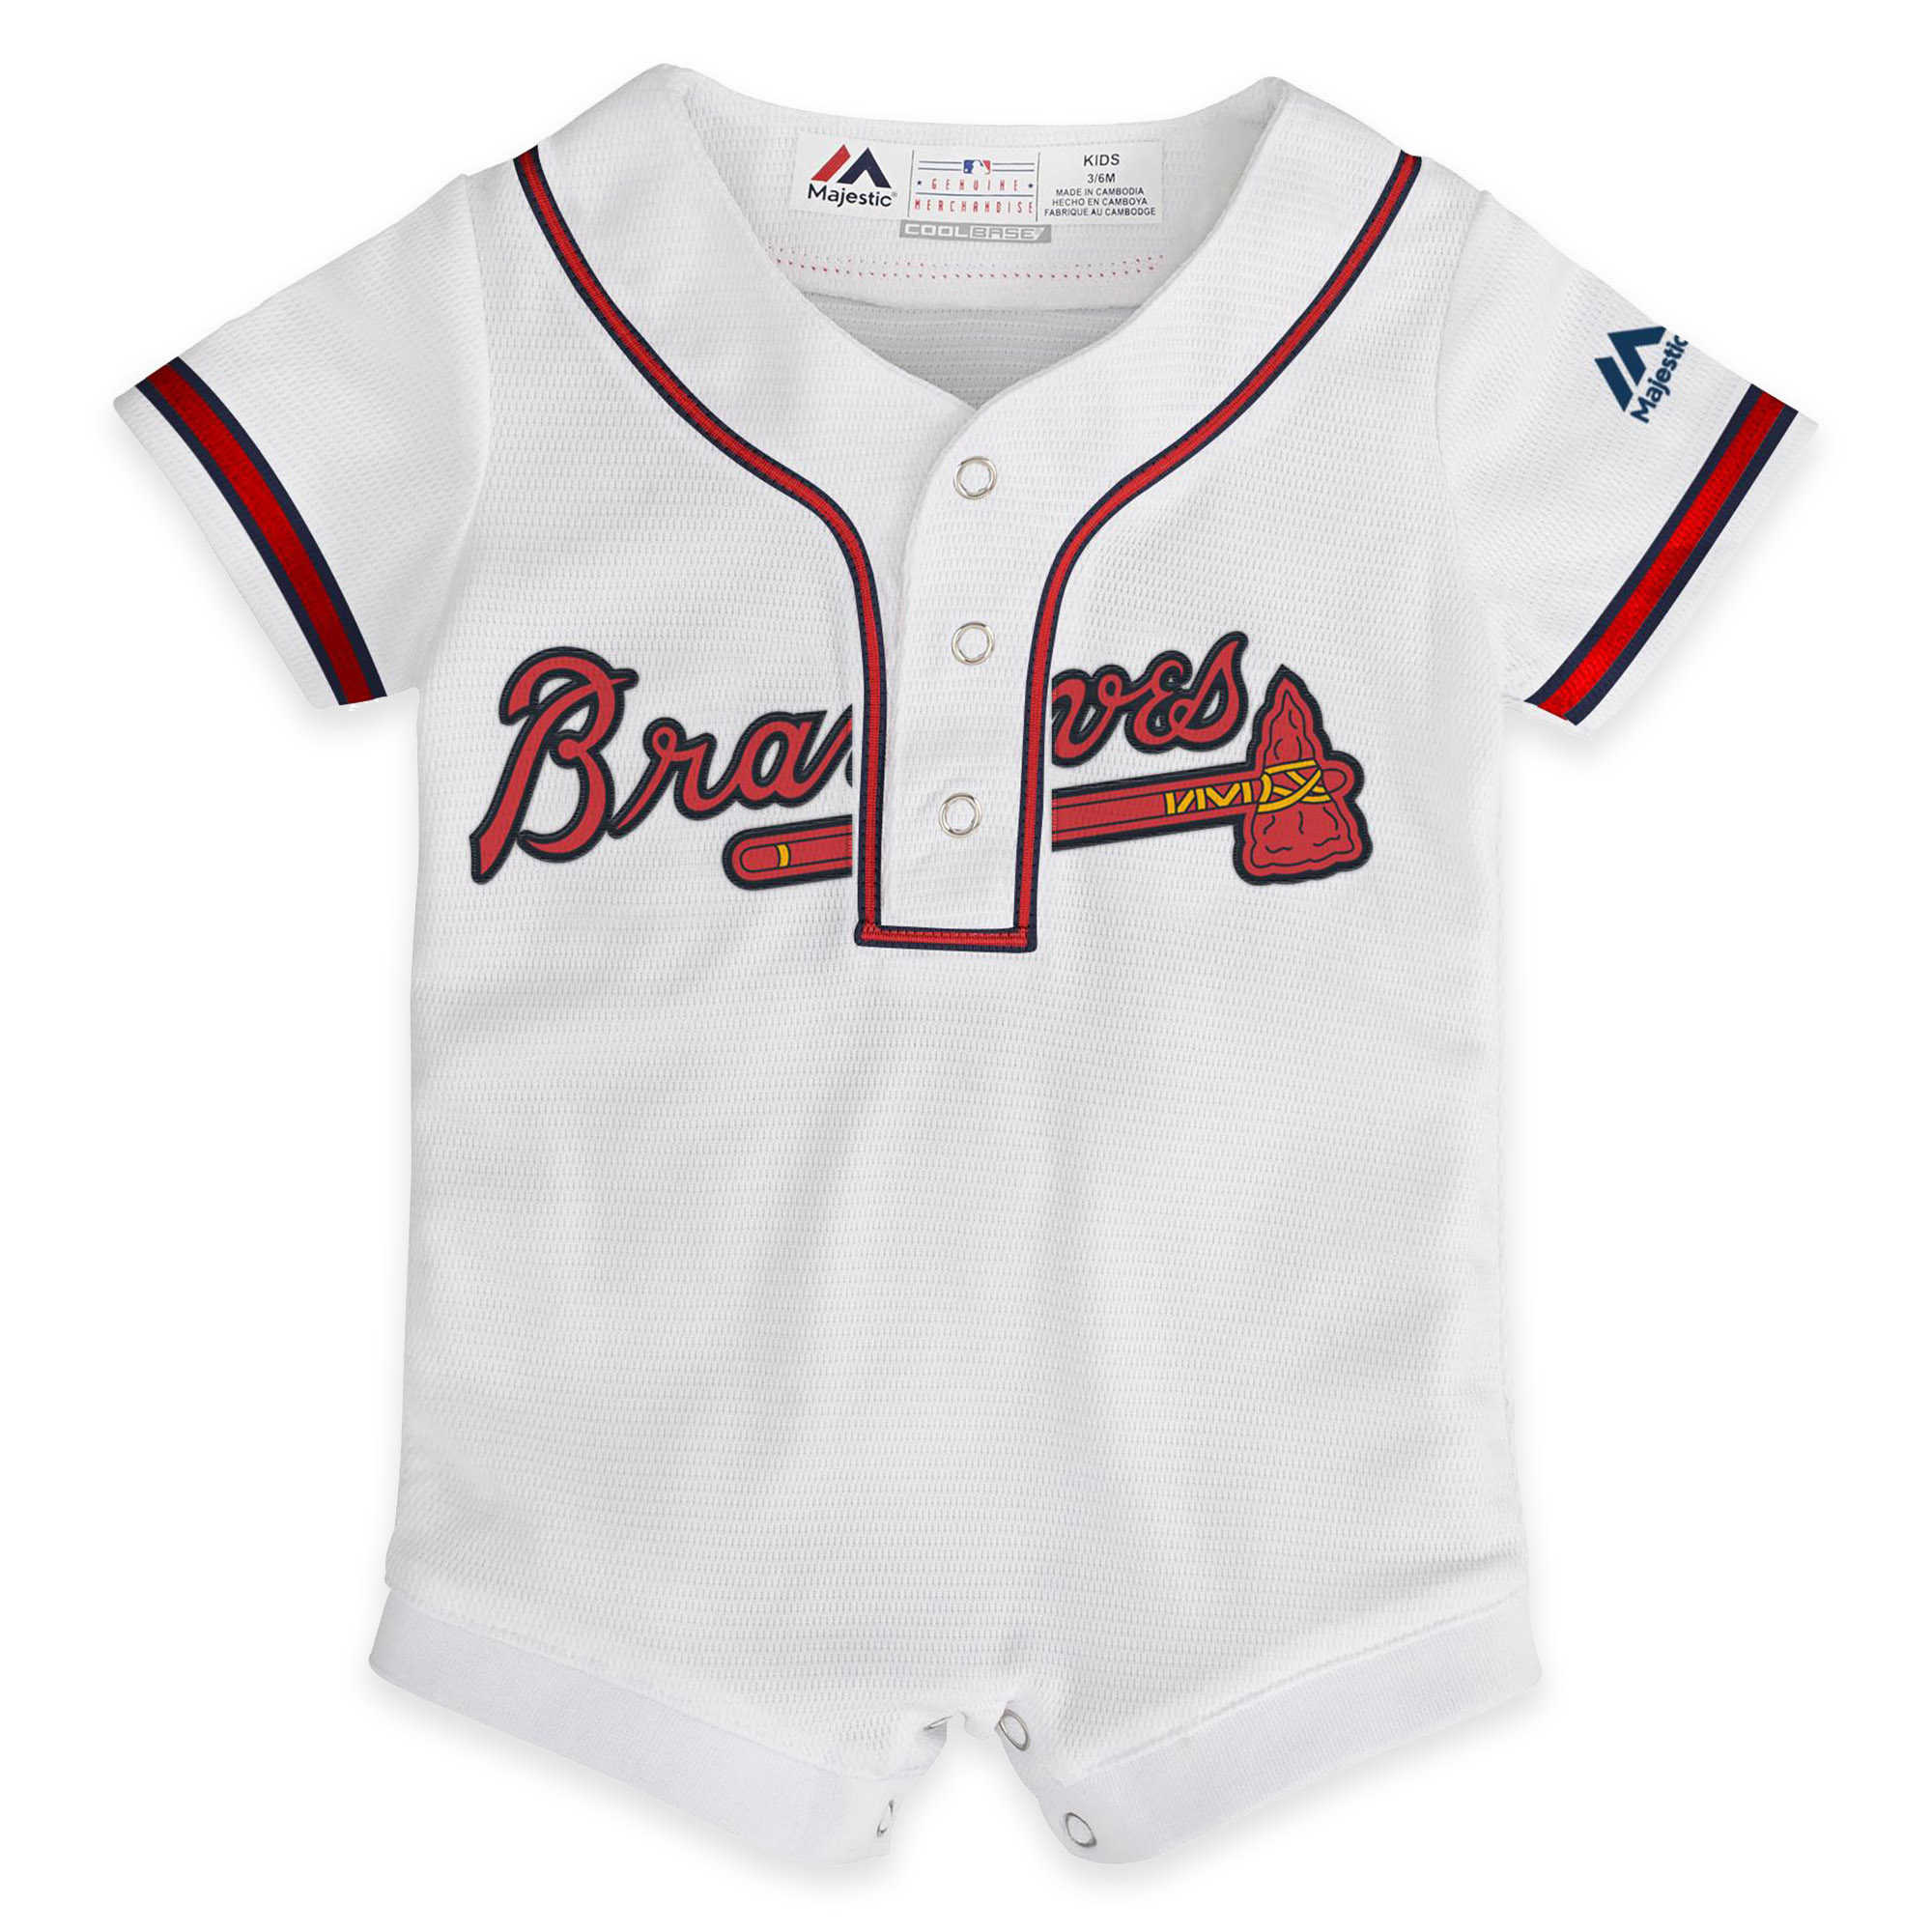 Atlanta Braves Newborn Infant Baby Onesie Can Be Personalized